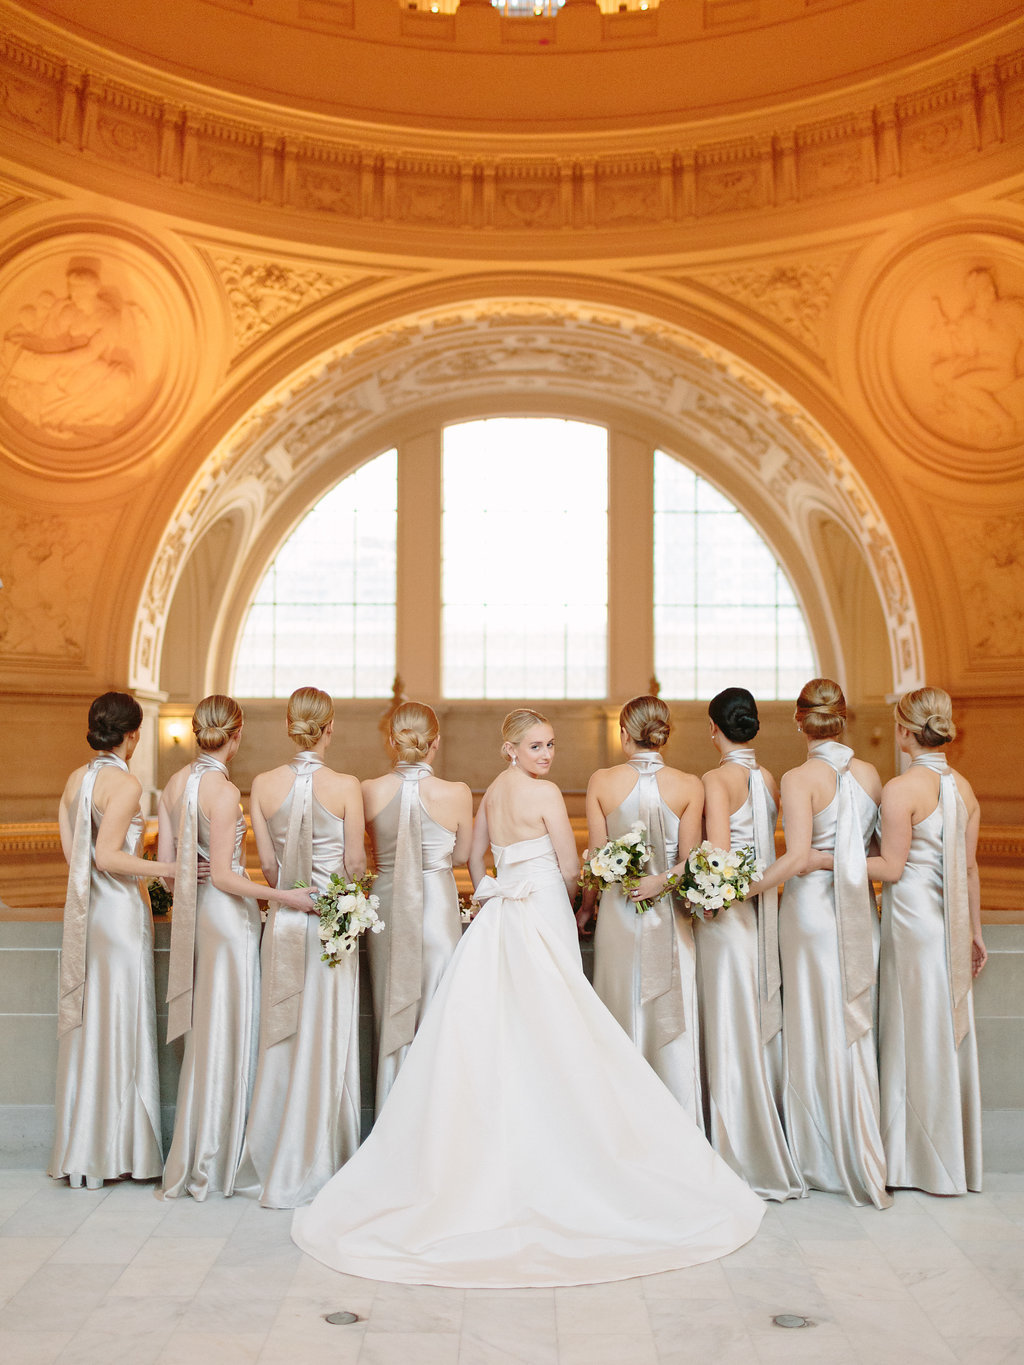 Bridesmaids for wedding by Jenny Schneider Events at the San Francisco City Hall. Photo by Larissa Cleveland Photography.